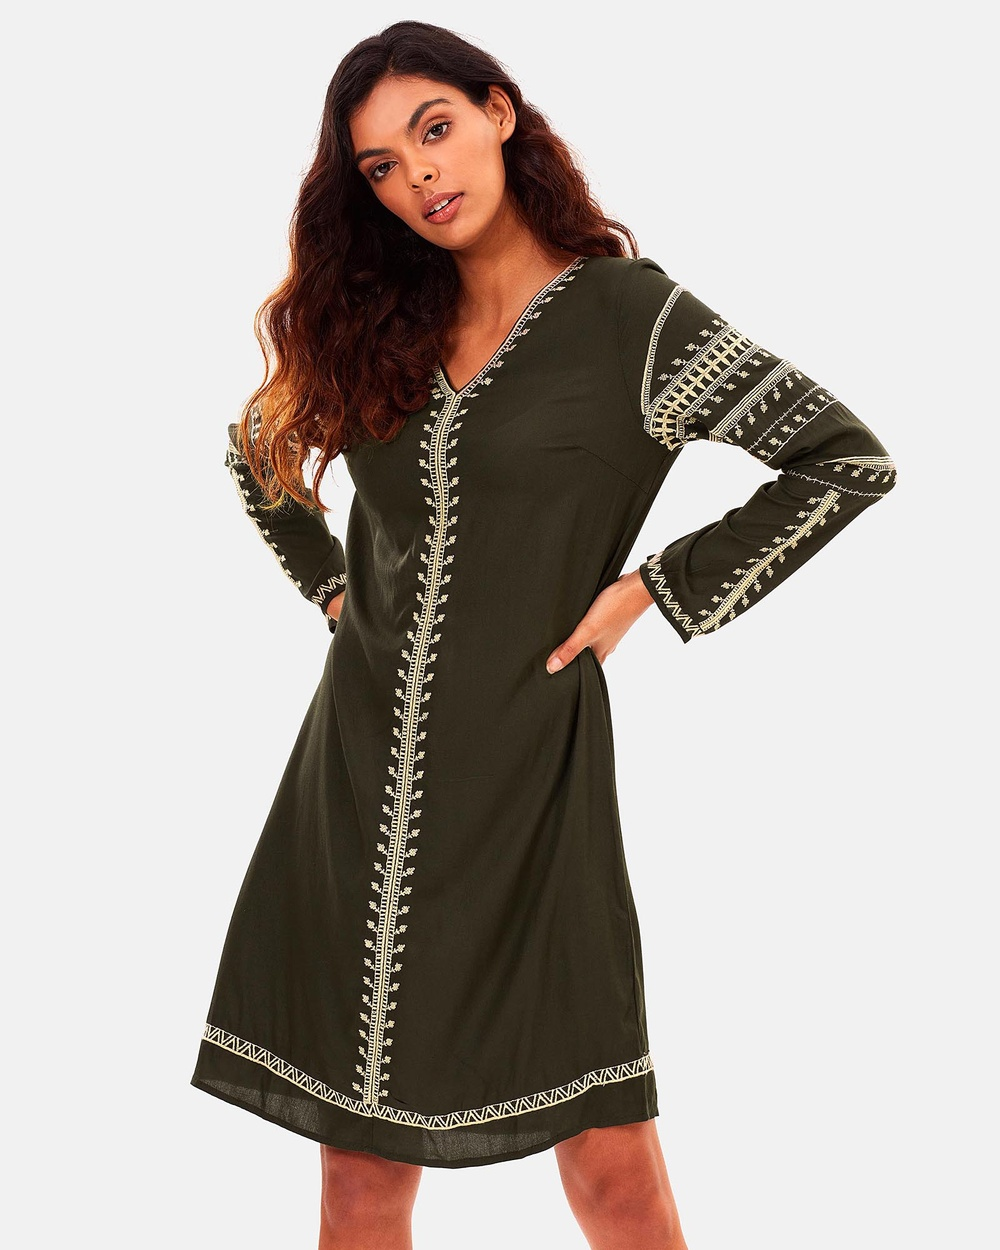 Kaja Clothing Sage Dress Dresses Green Sage Dress